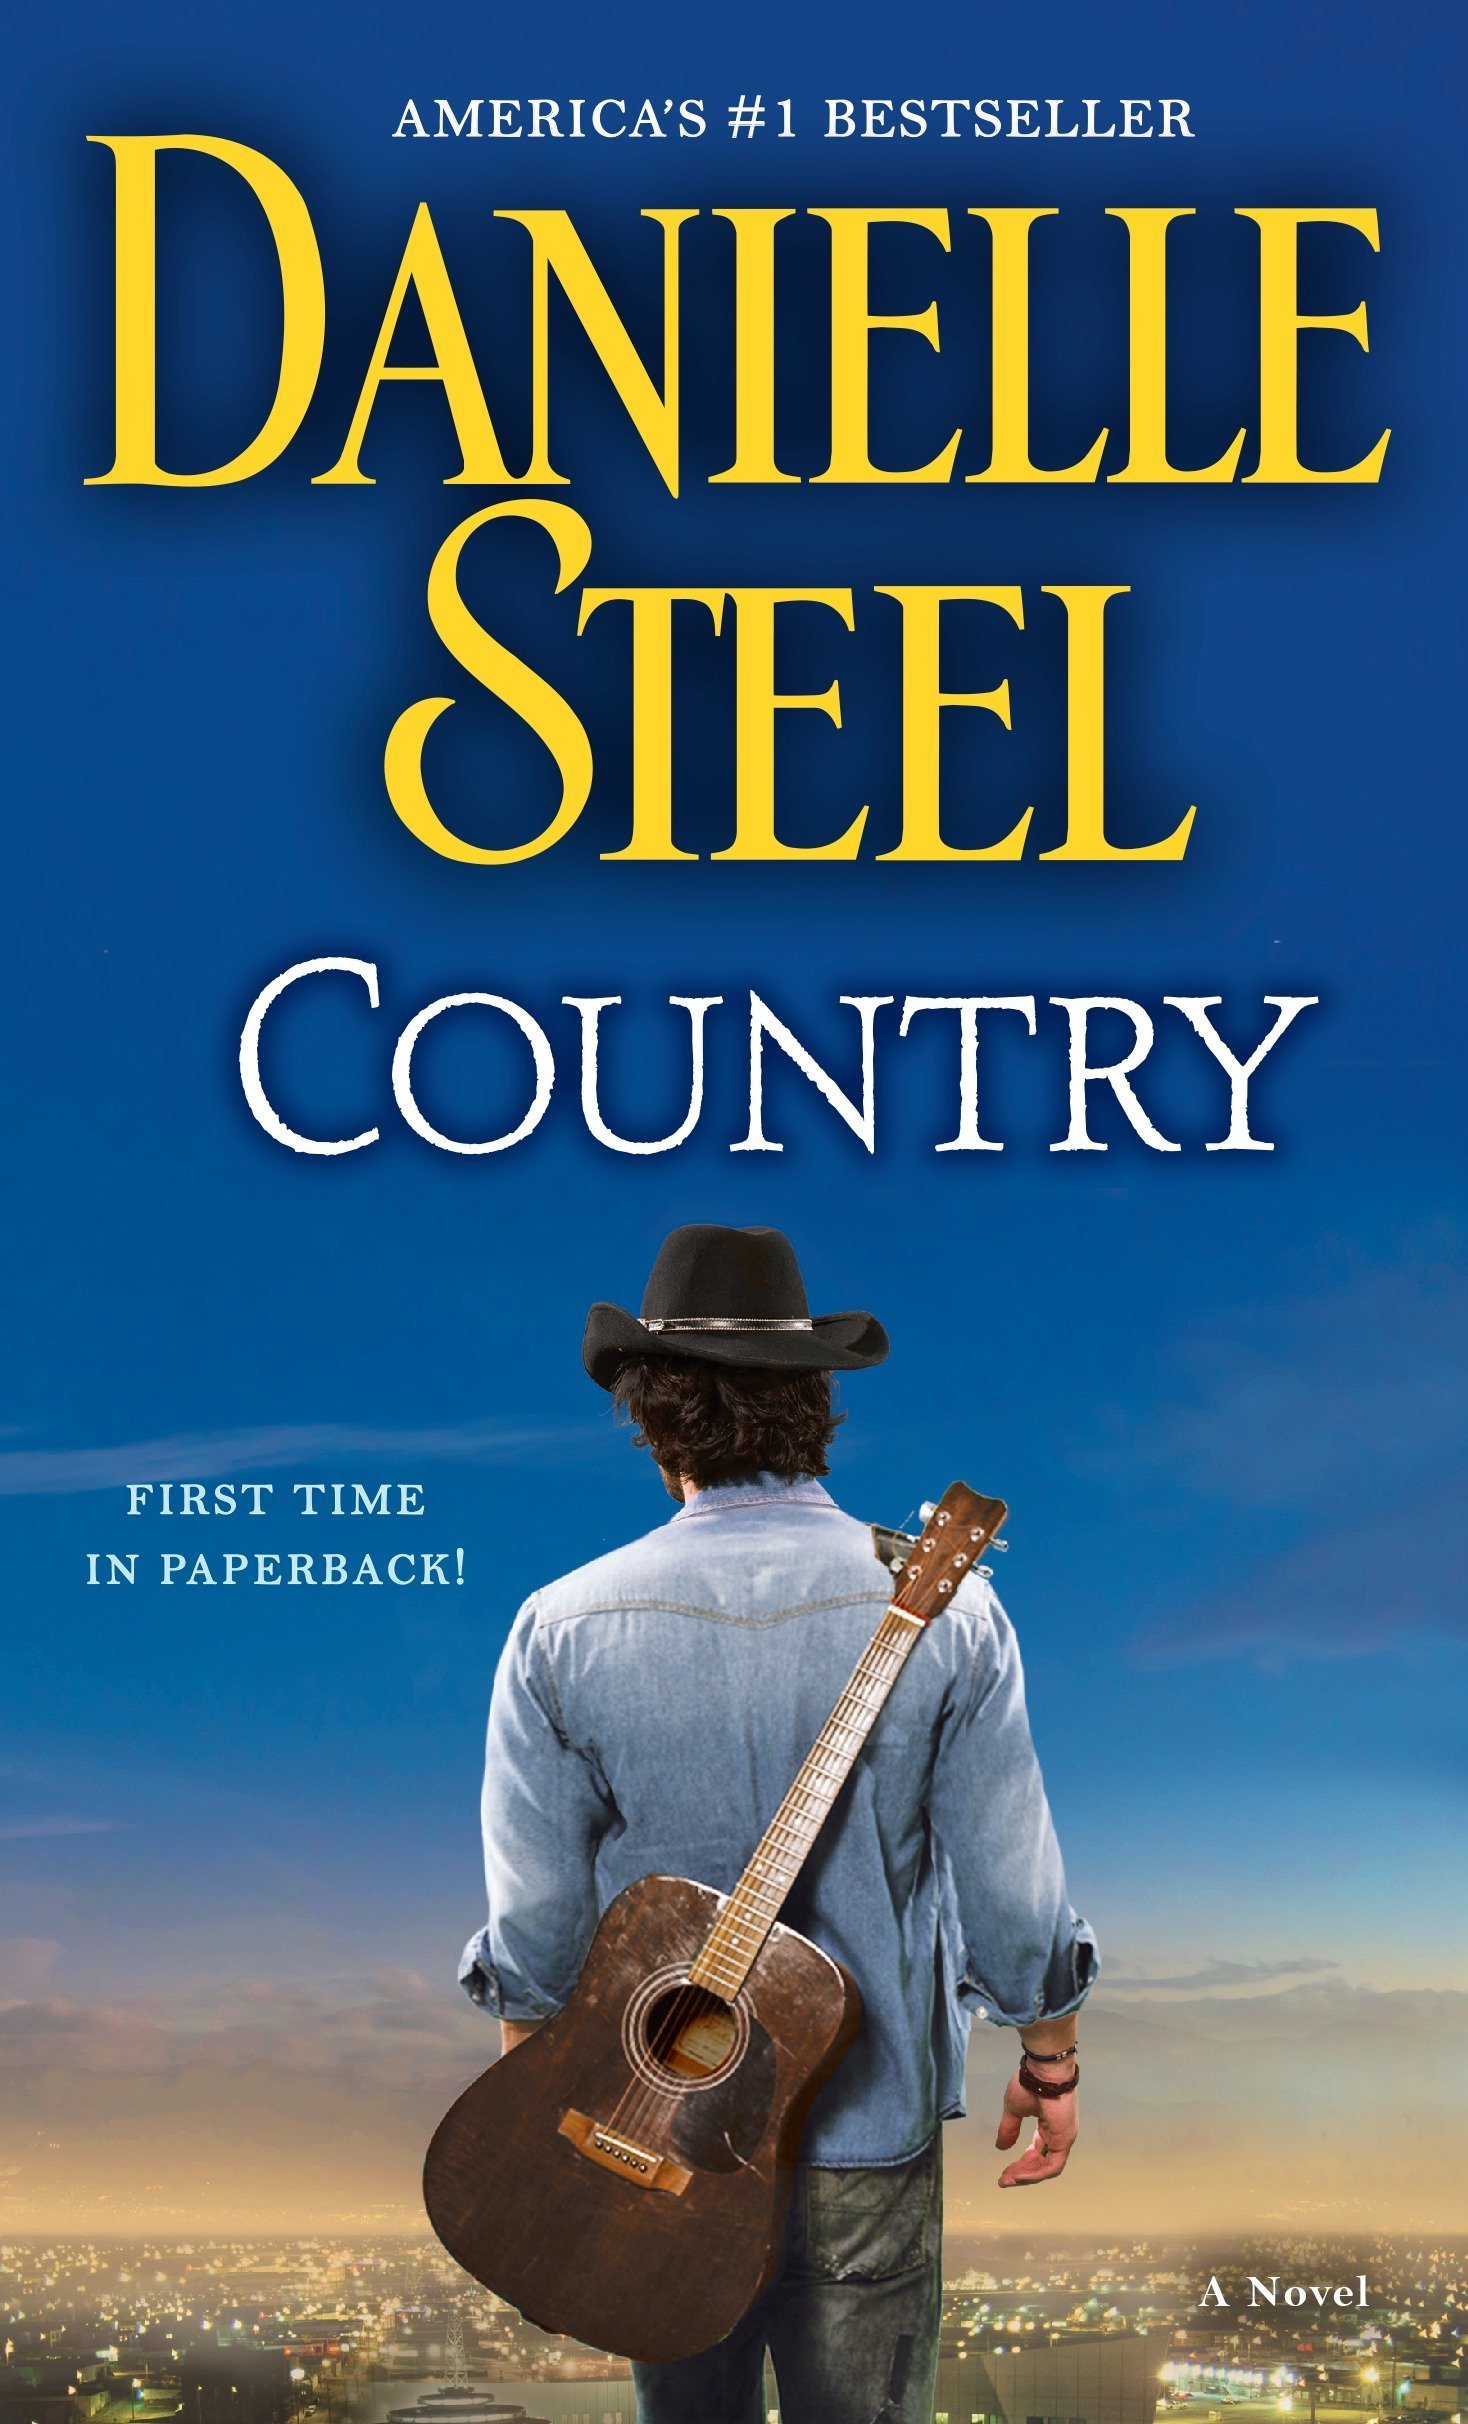 DANIELLE STEEL COUNTRY PDF DOWNLOAD